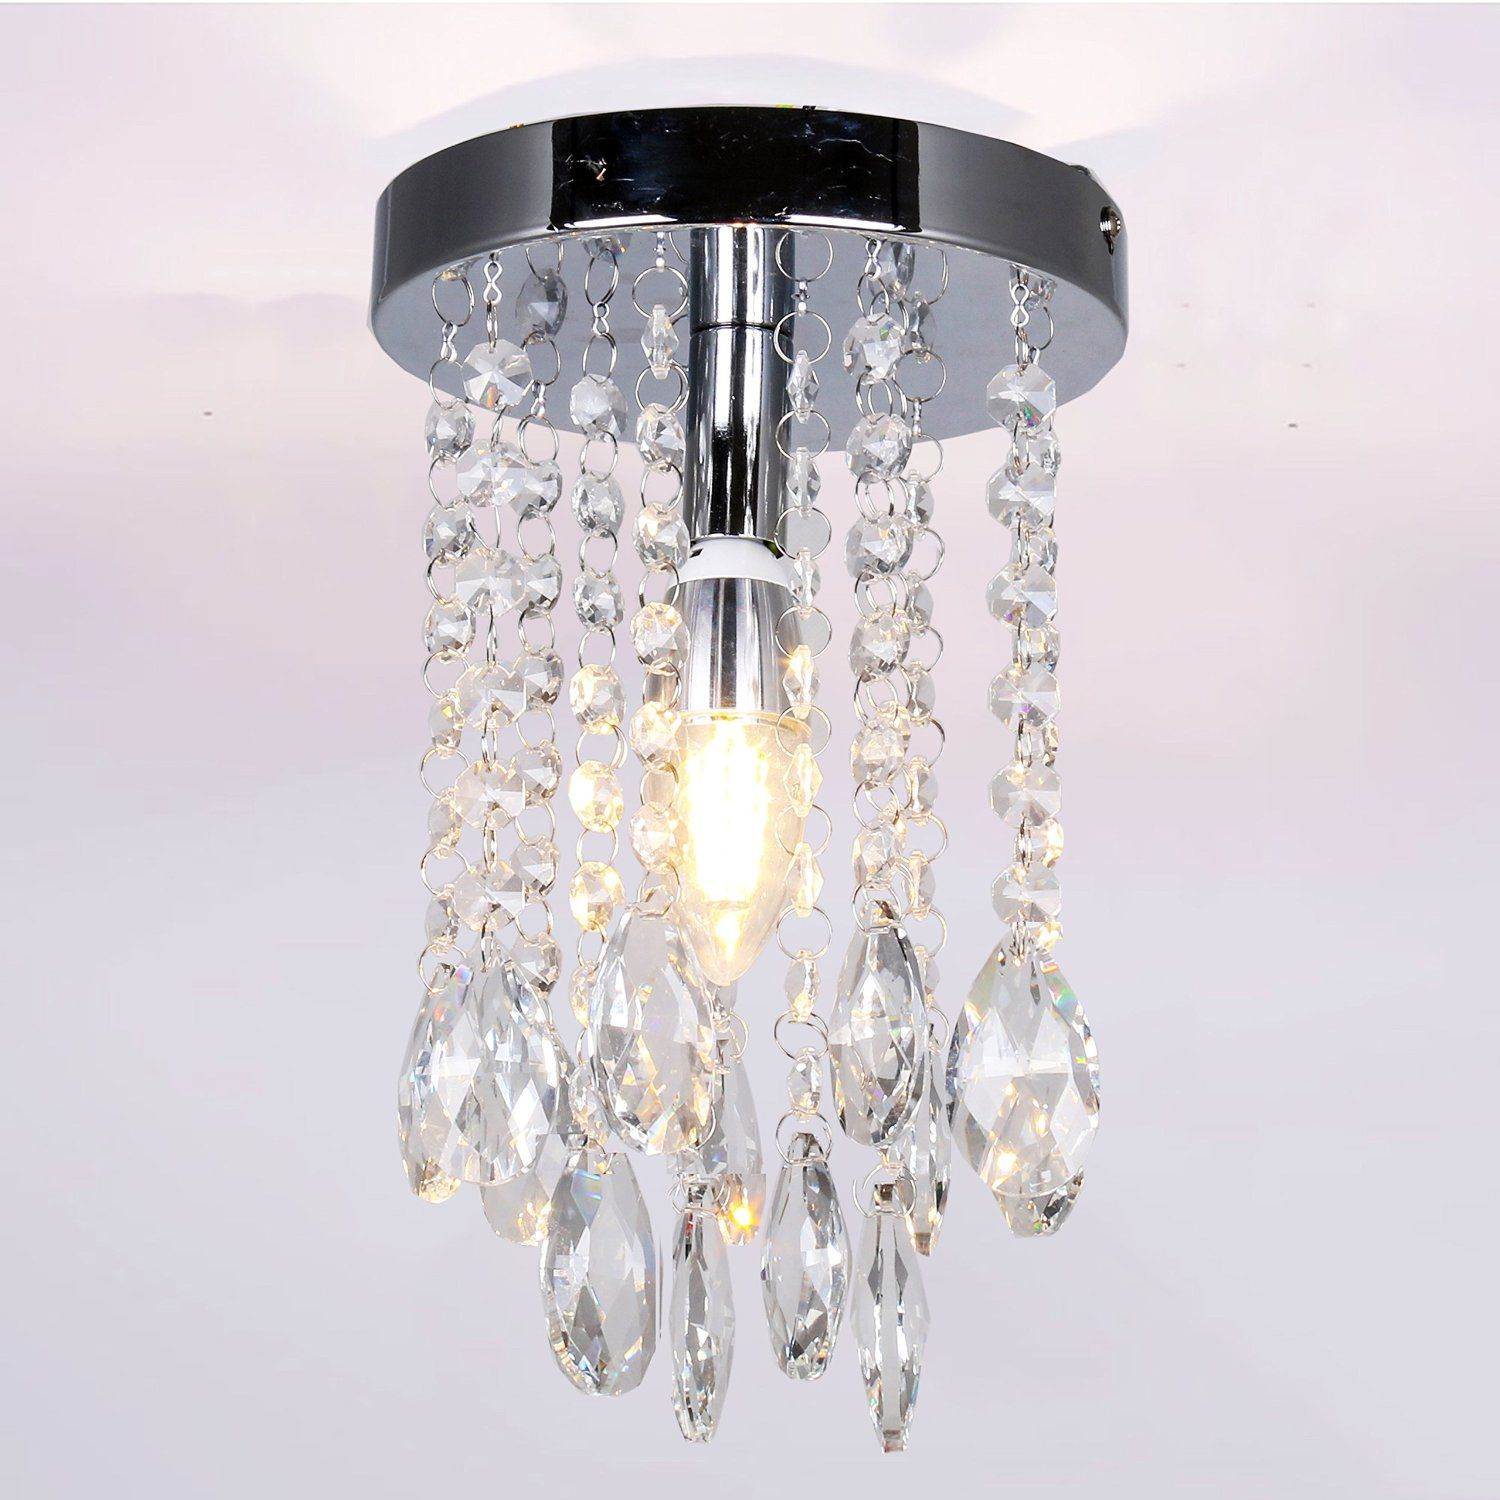 Mini chrome crystal chandelier for girls room teardrop pendant lamp mini chrome crystal chandelier for girls room teardrop pendant lamp flush mount ceiling lamp fixture aloadofball Images